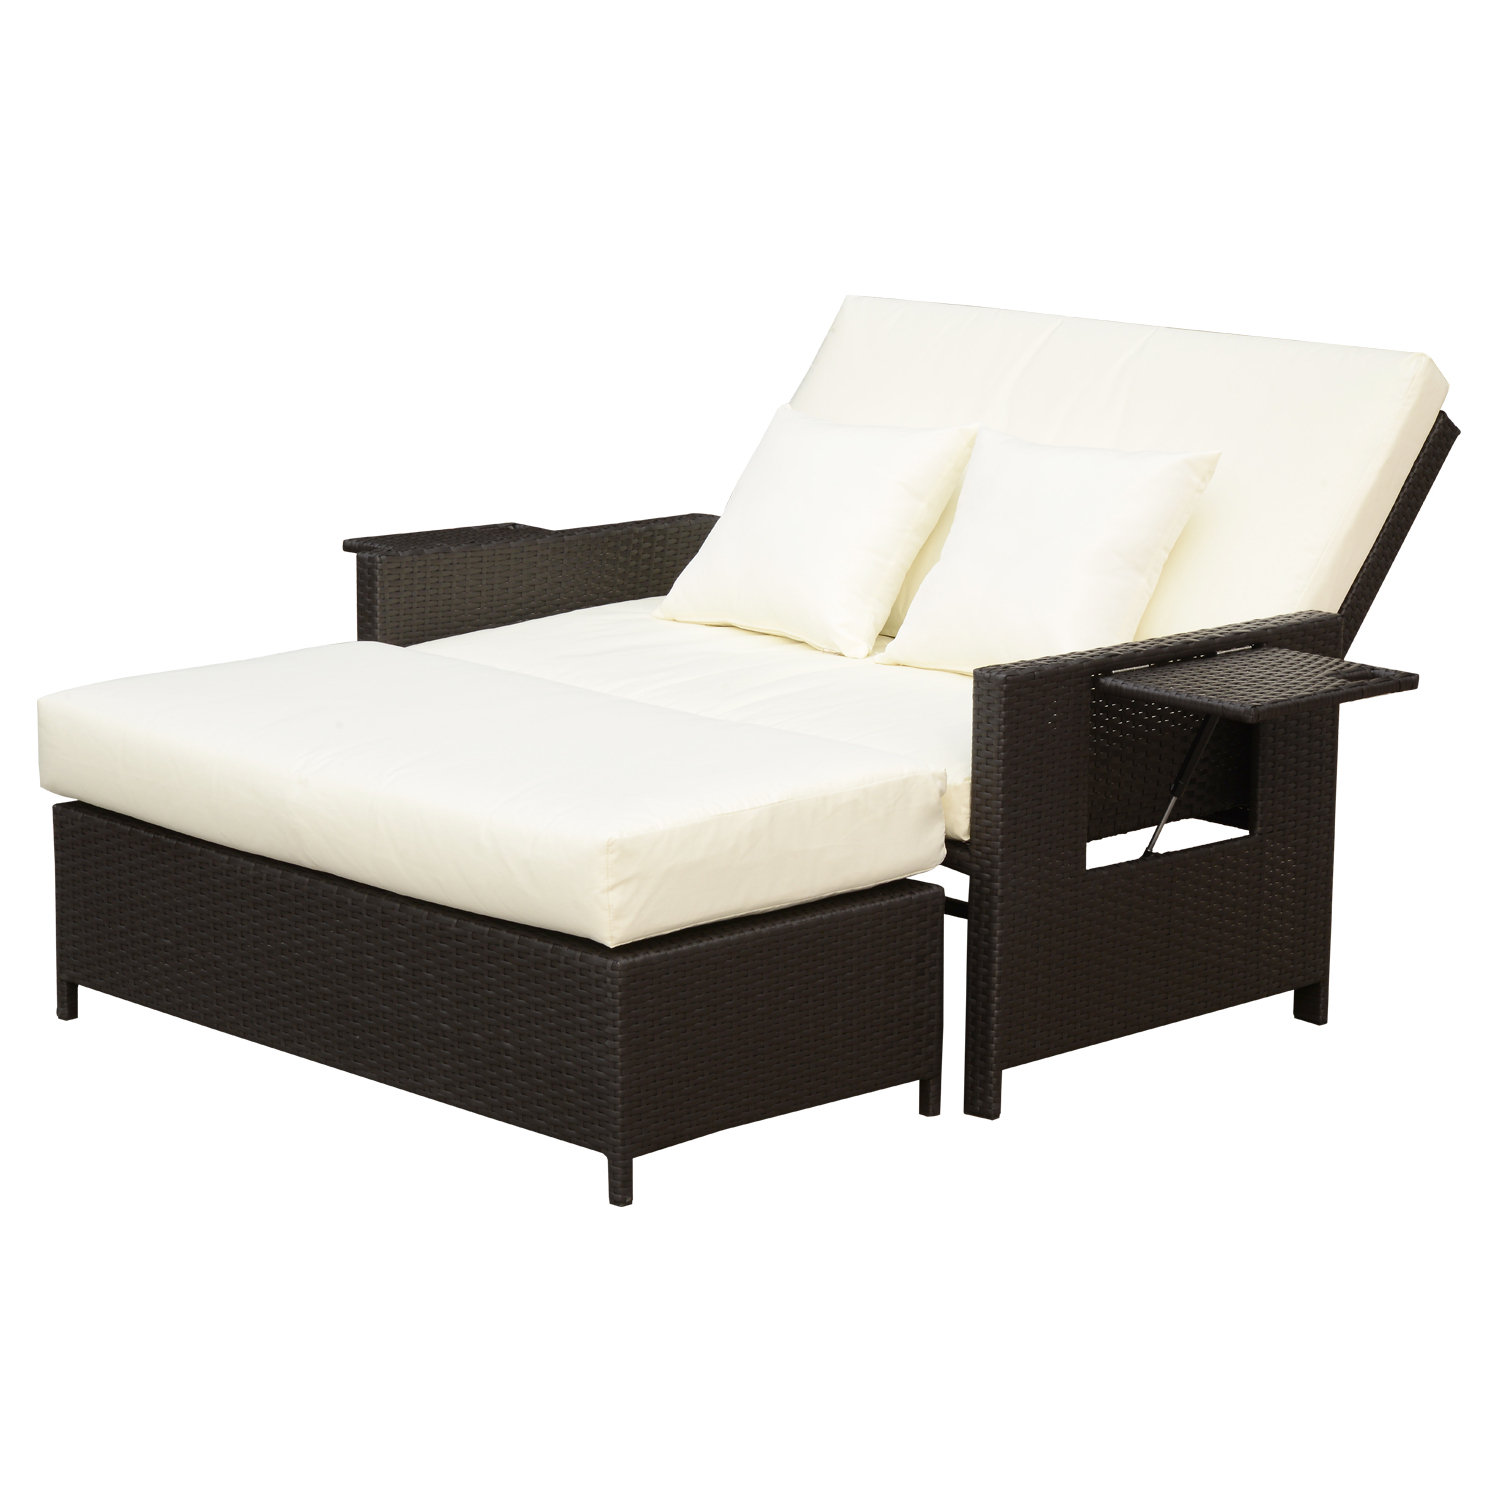 2 Piece Outdoor Wicker Chaise Lounge Chairs Throughout Well Known Outsunny 2 Piece Outdoor Rattan Wicker Chaise Lounge And Ottoman Set Cushioned (View 9 of 25)